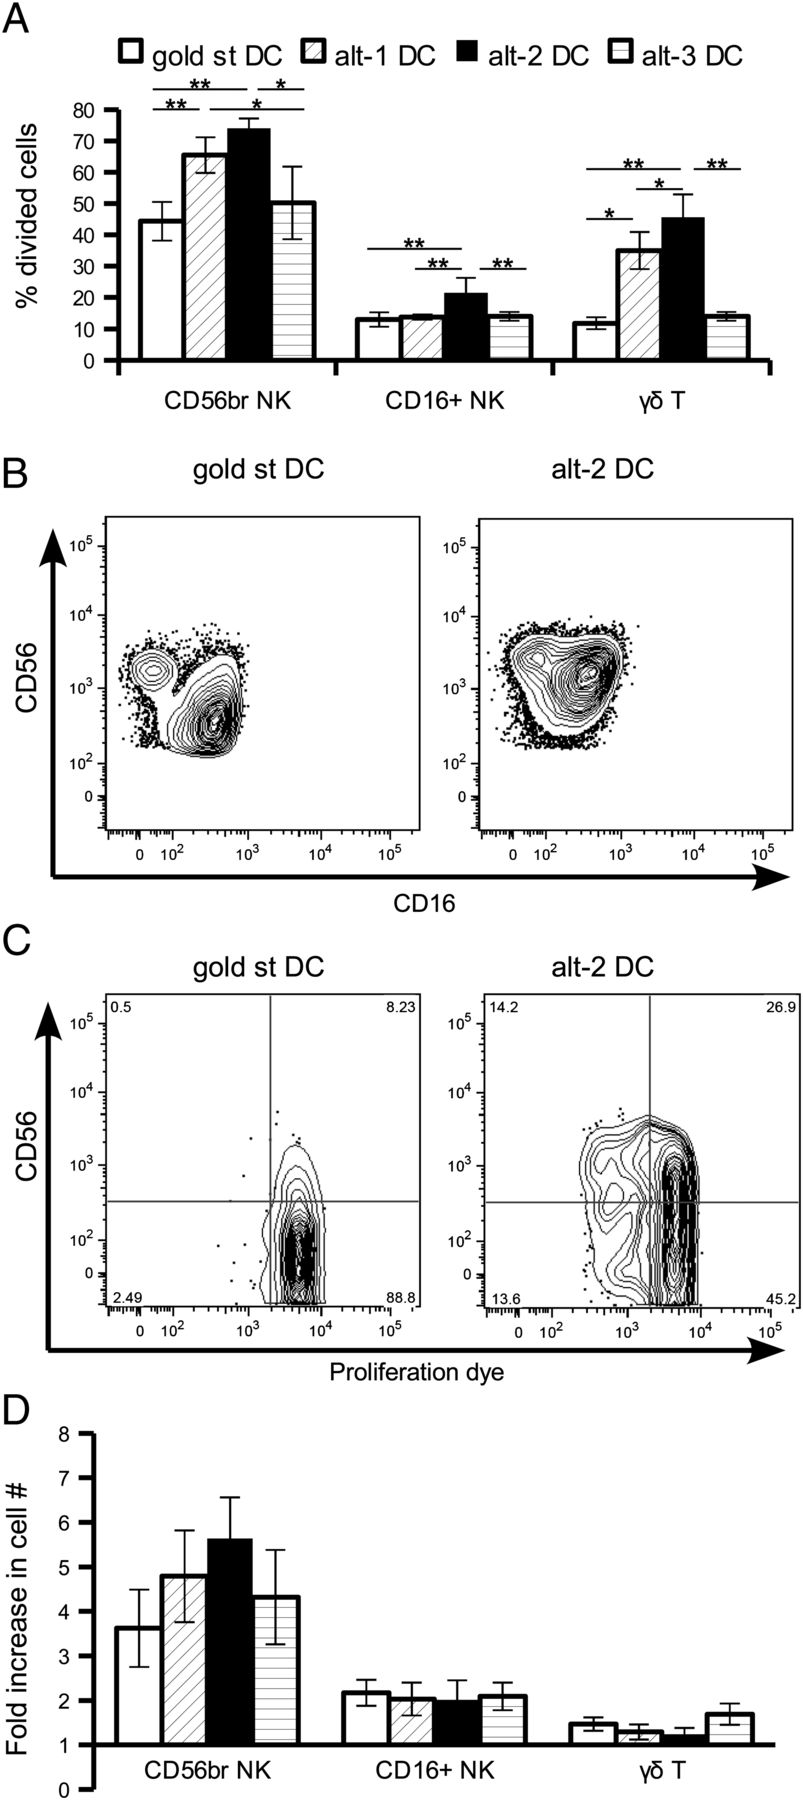 Fast Dendritic Cells Stimulated With Alternative Maturation Mixtures Labeled Animal Cell Diagram Related Keywords Suggestions Download Figure